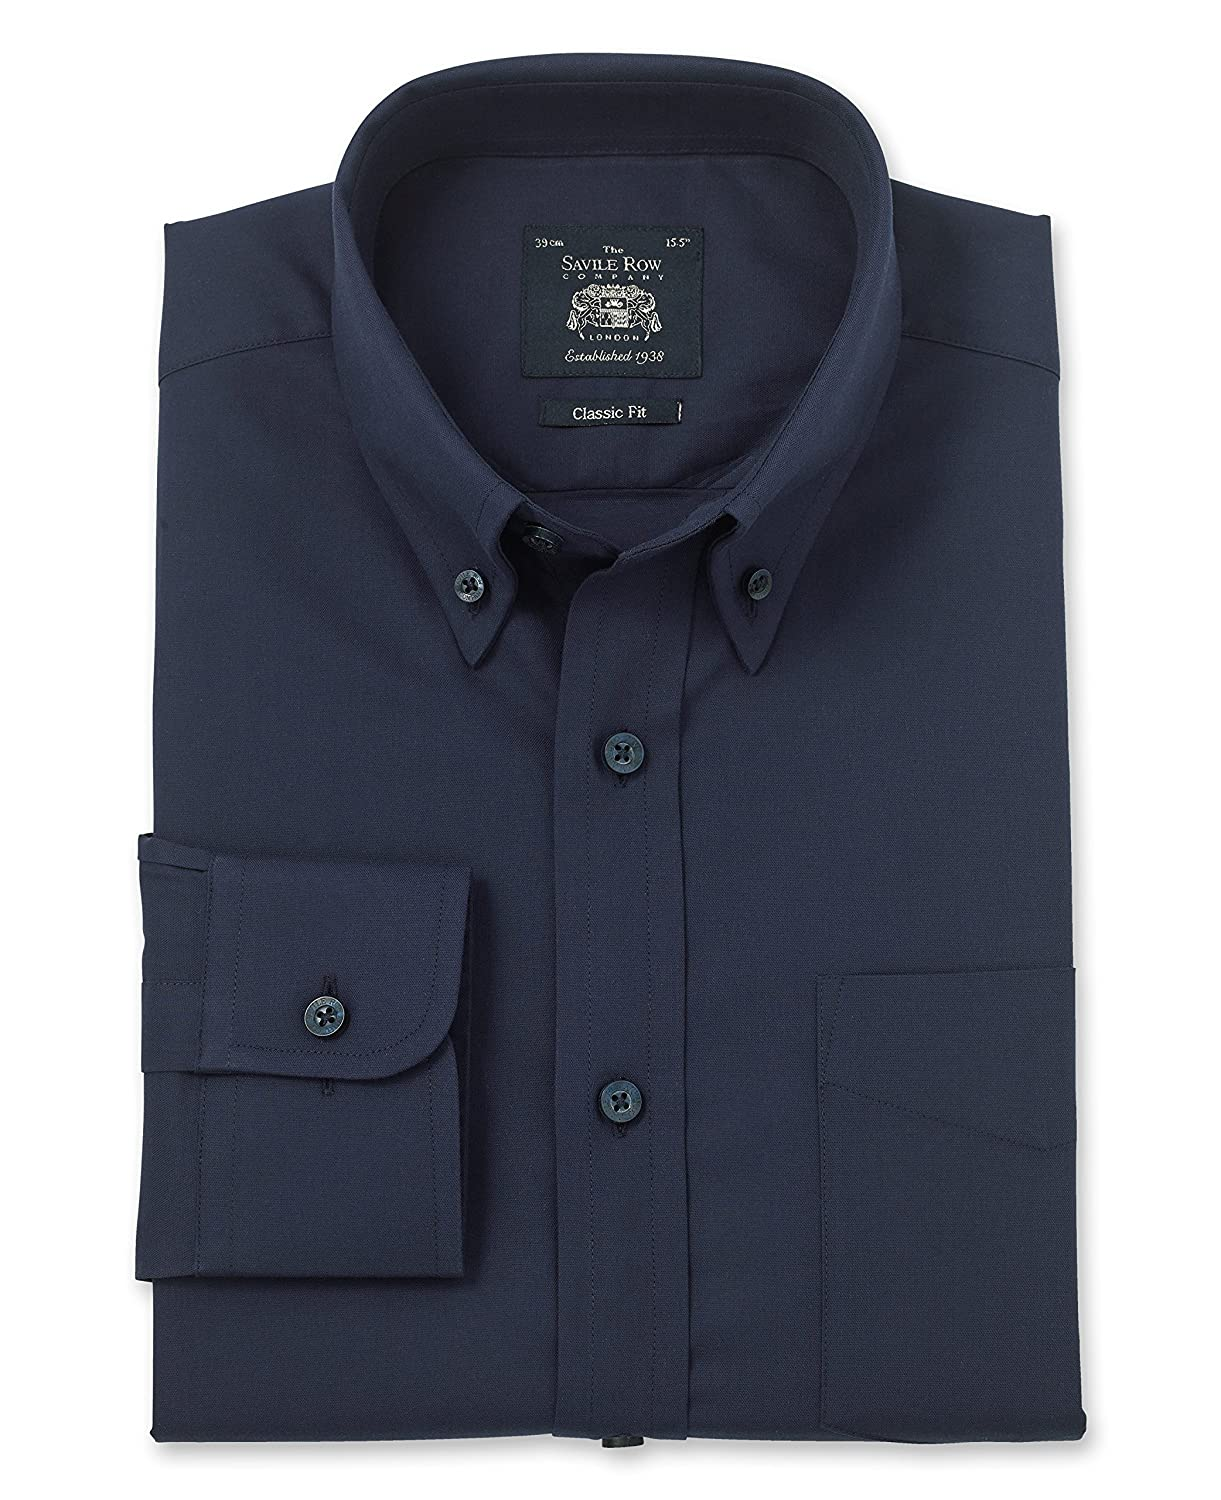 Savile Row Men's Navy Oxford Classic Fit Shirt - Single Cuff